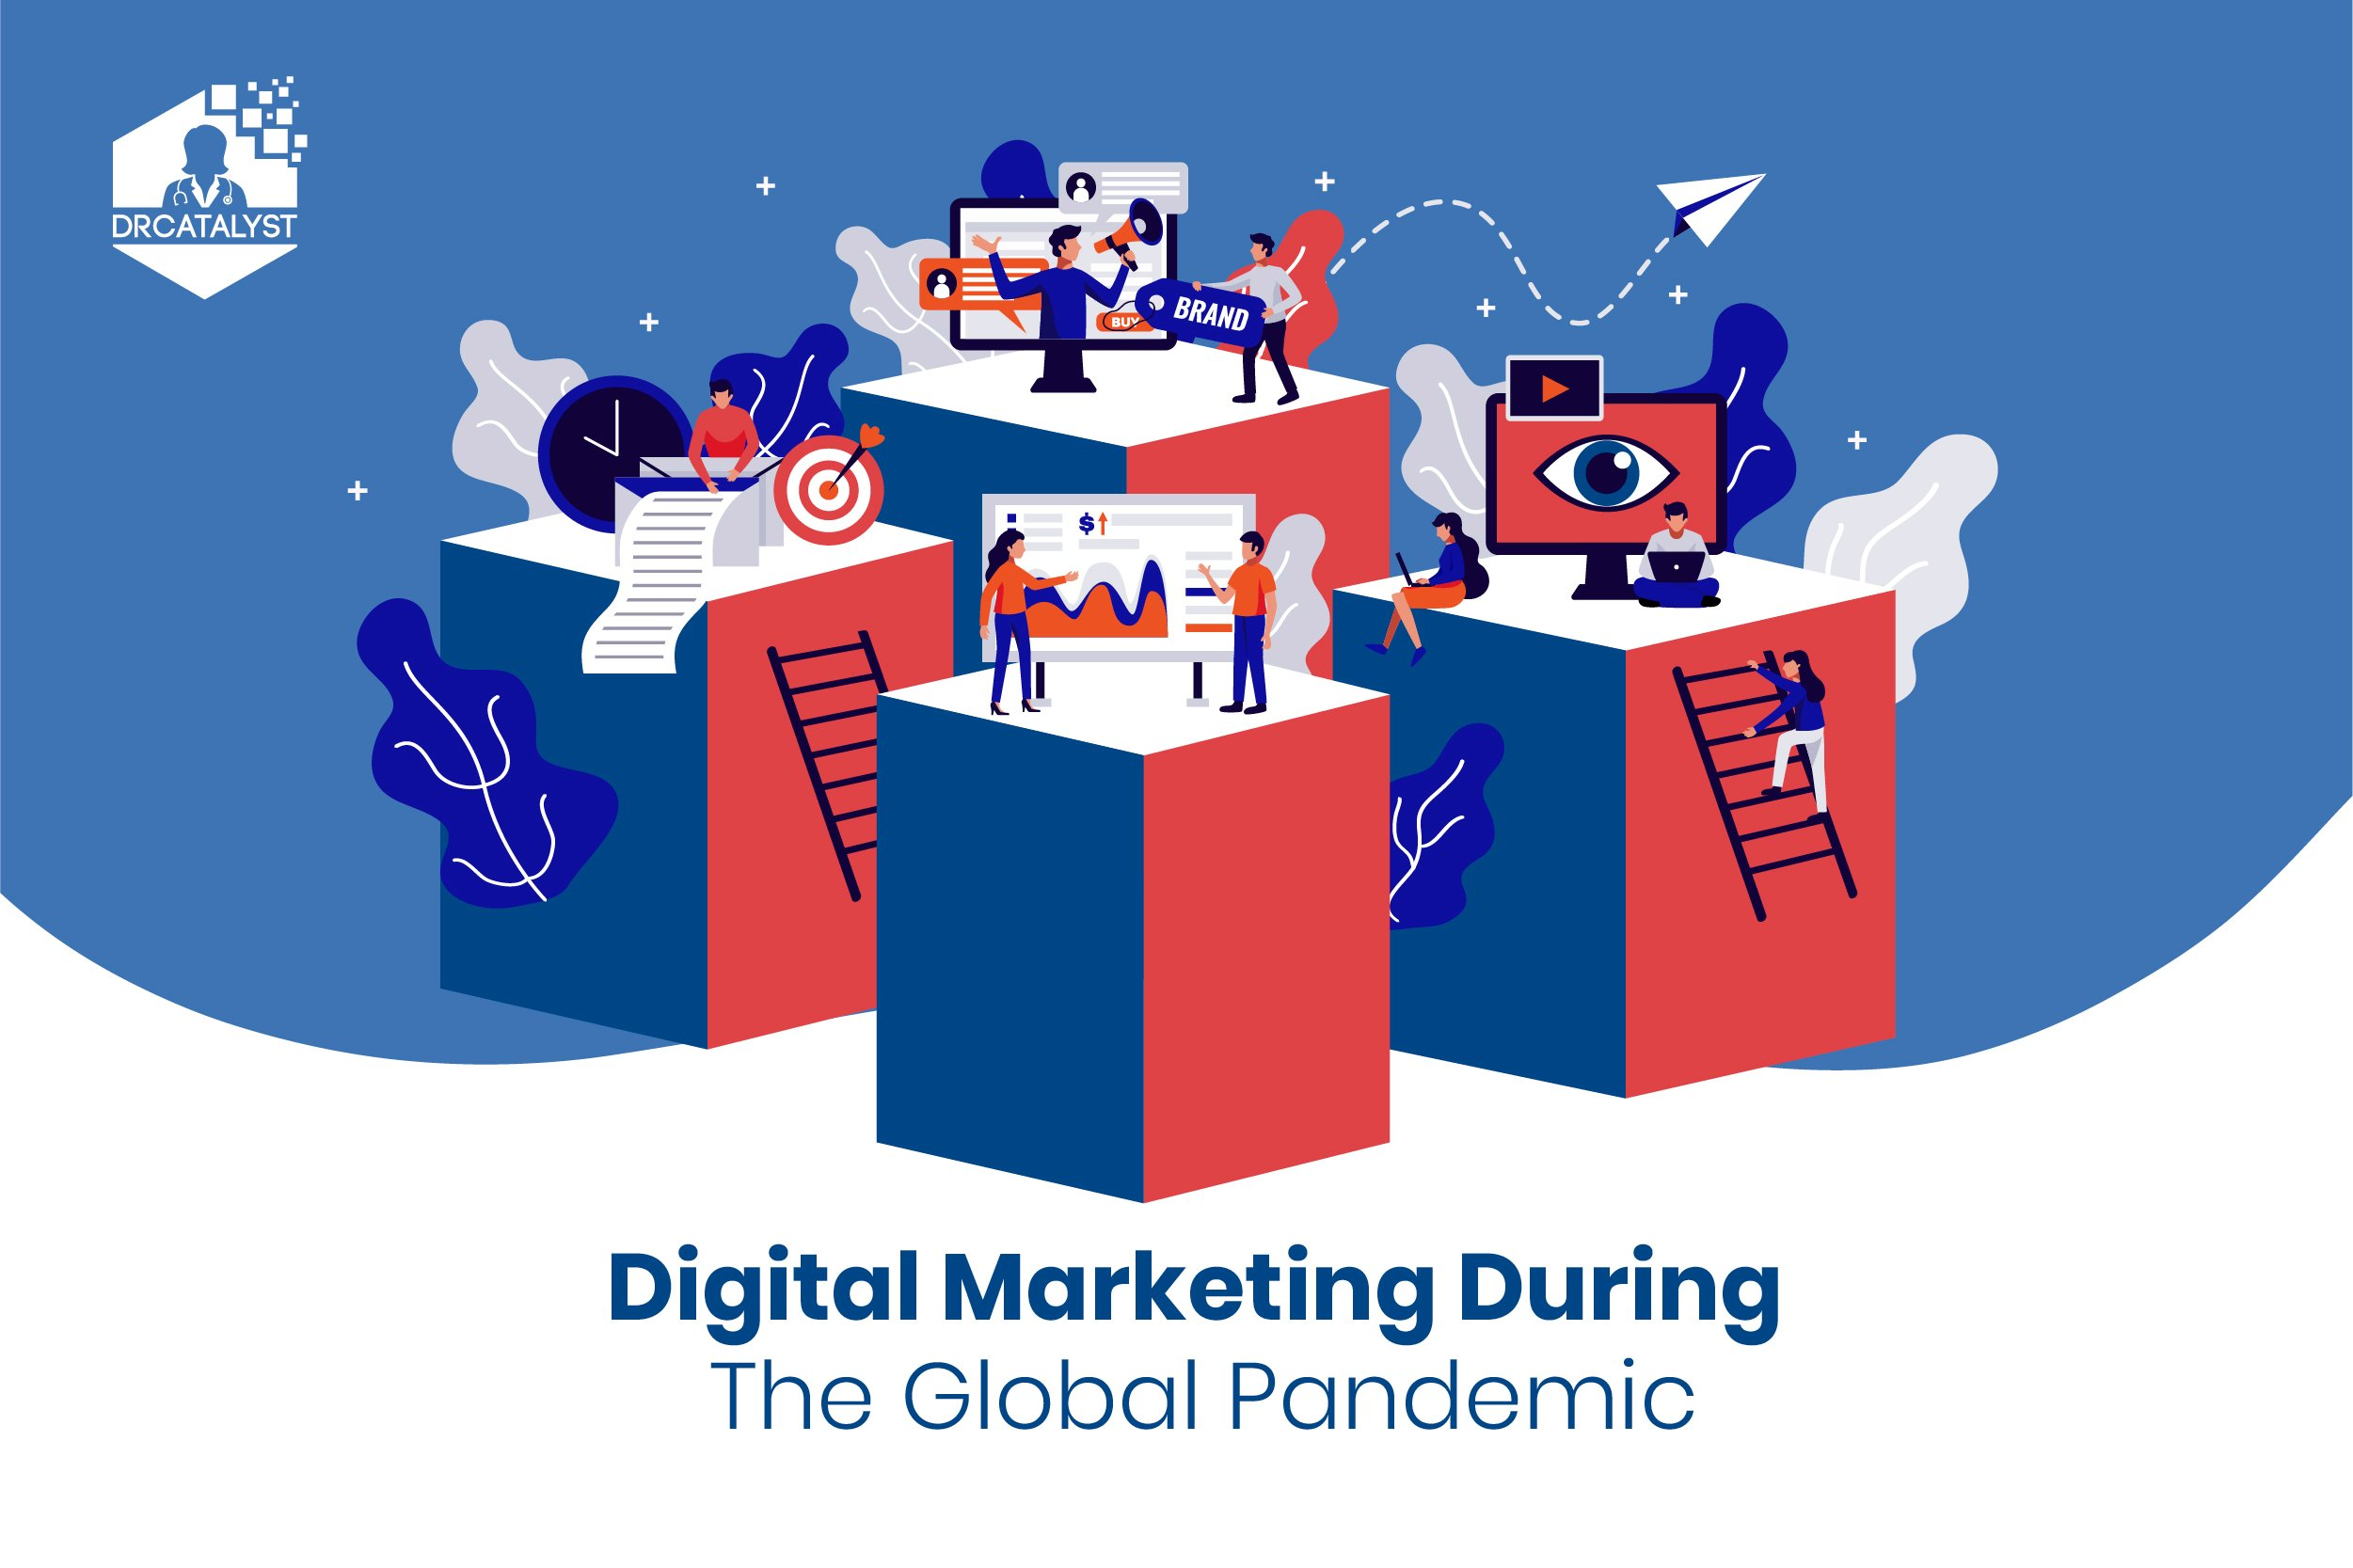 Digital Marketing During The Global Pandemic